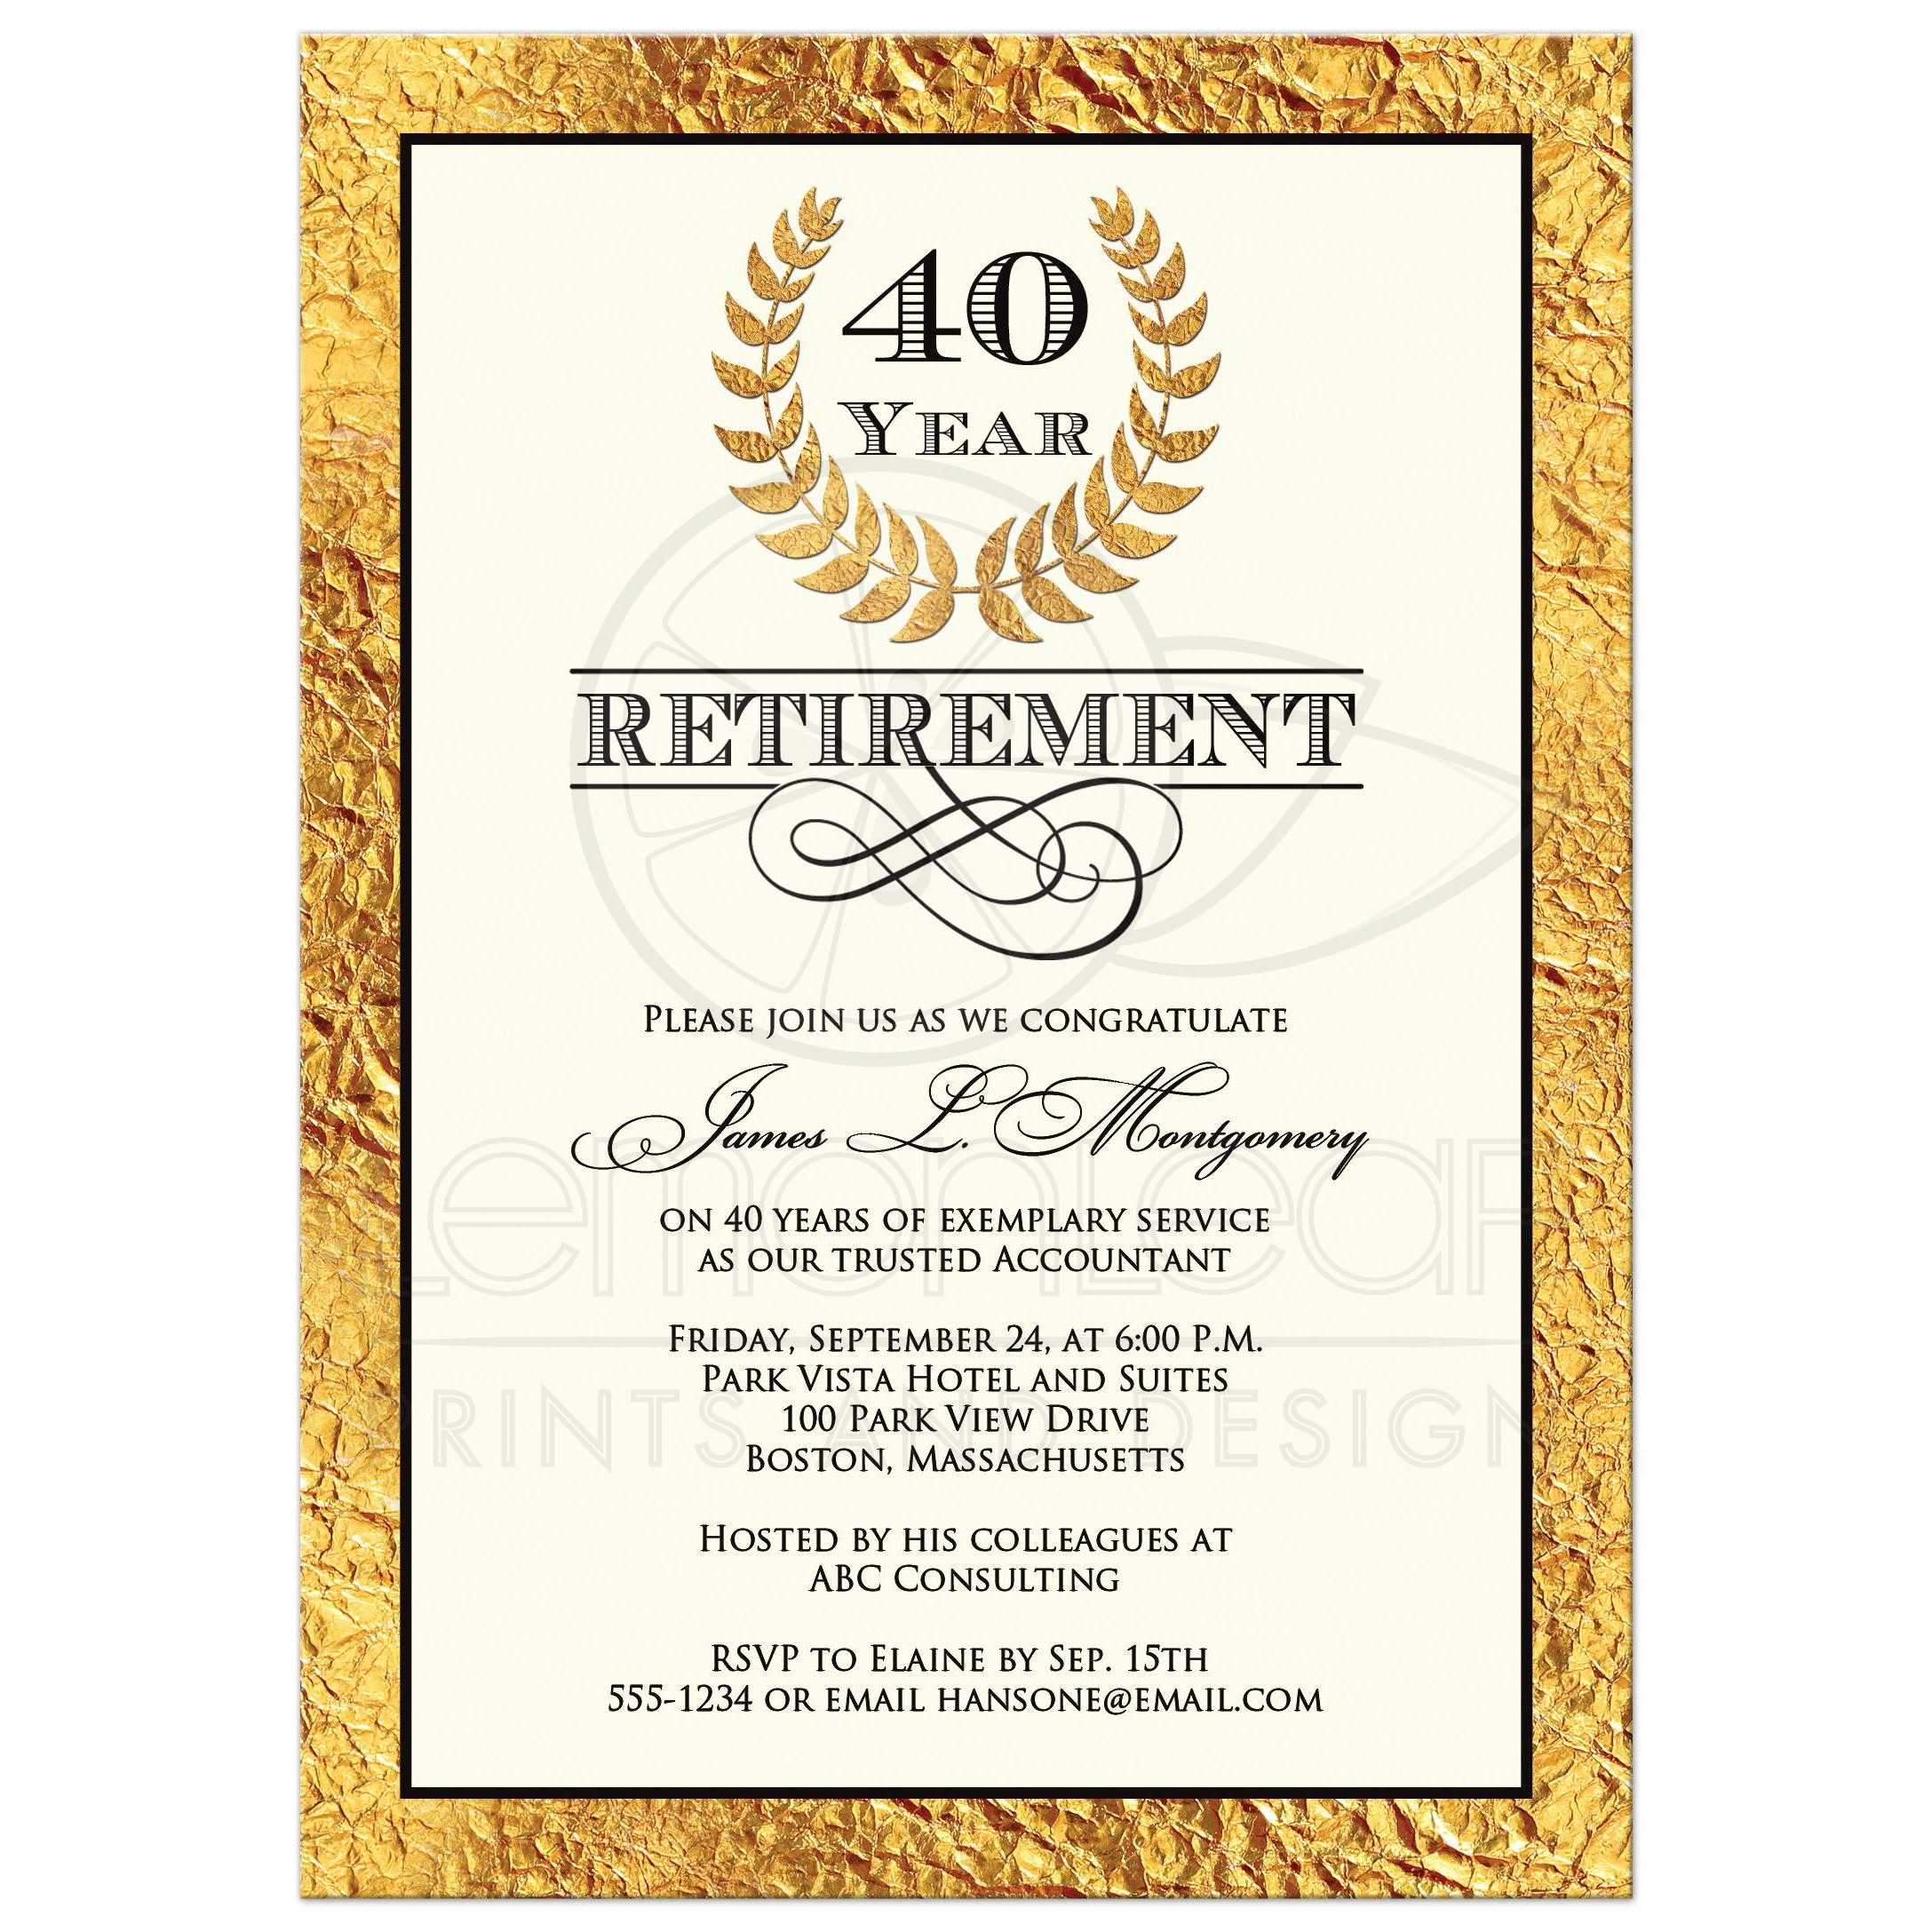 40 year retirement party invitation distinguished faux gold foil